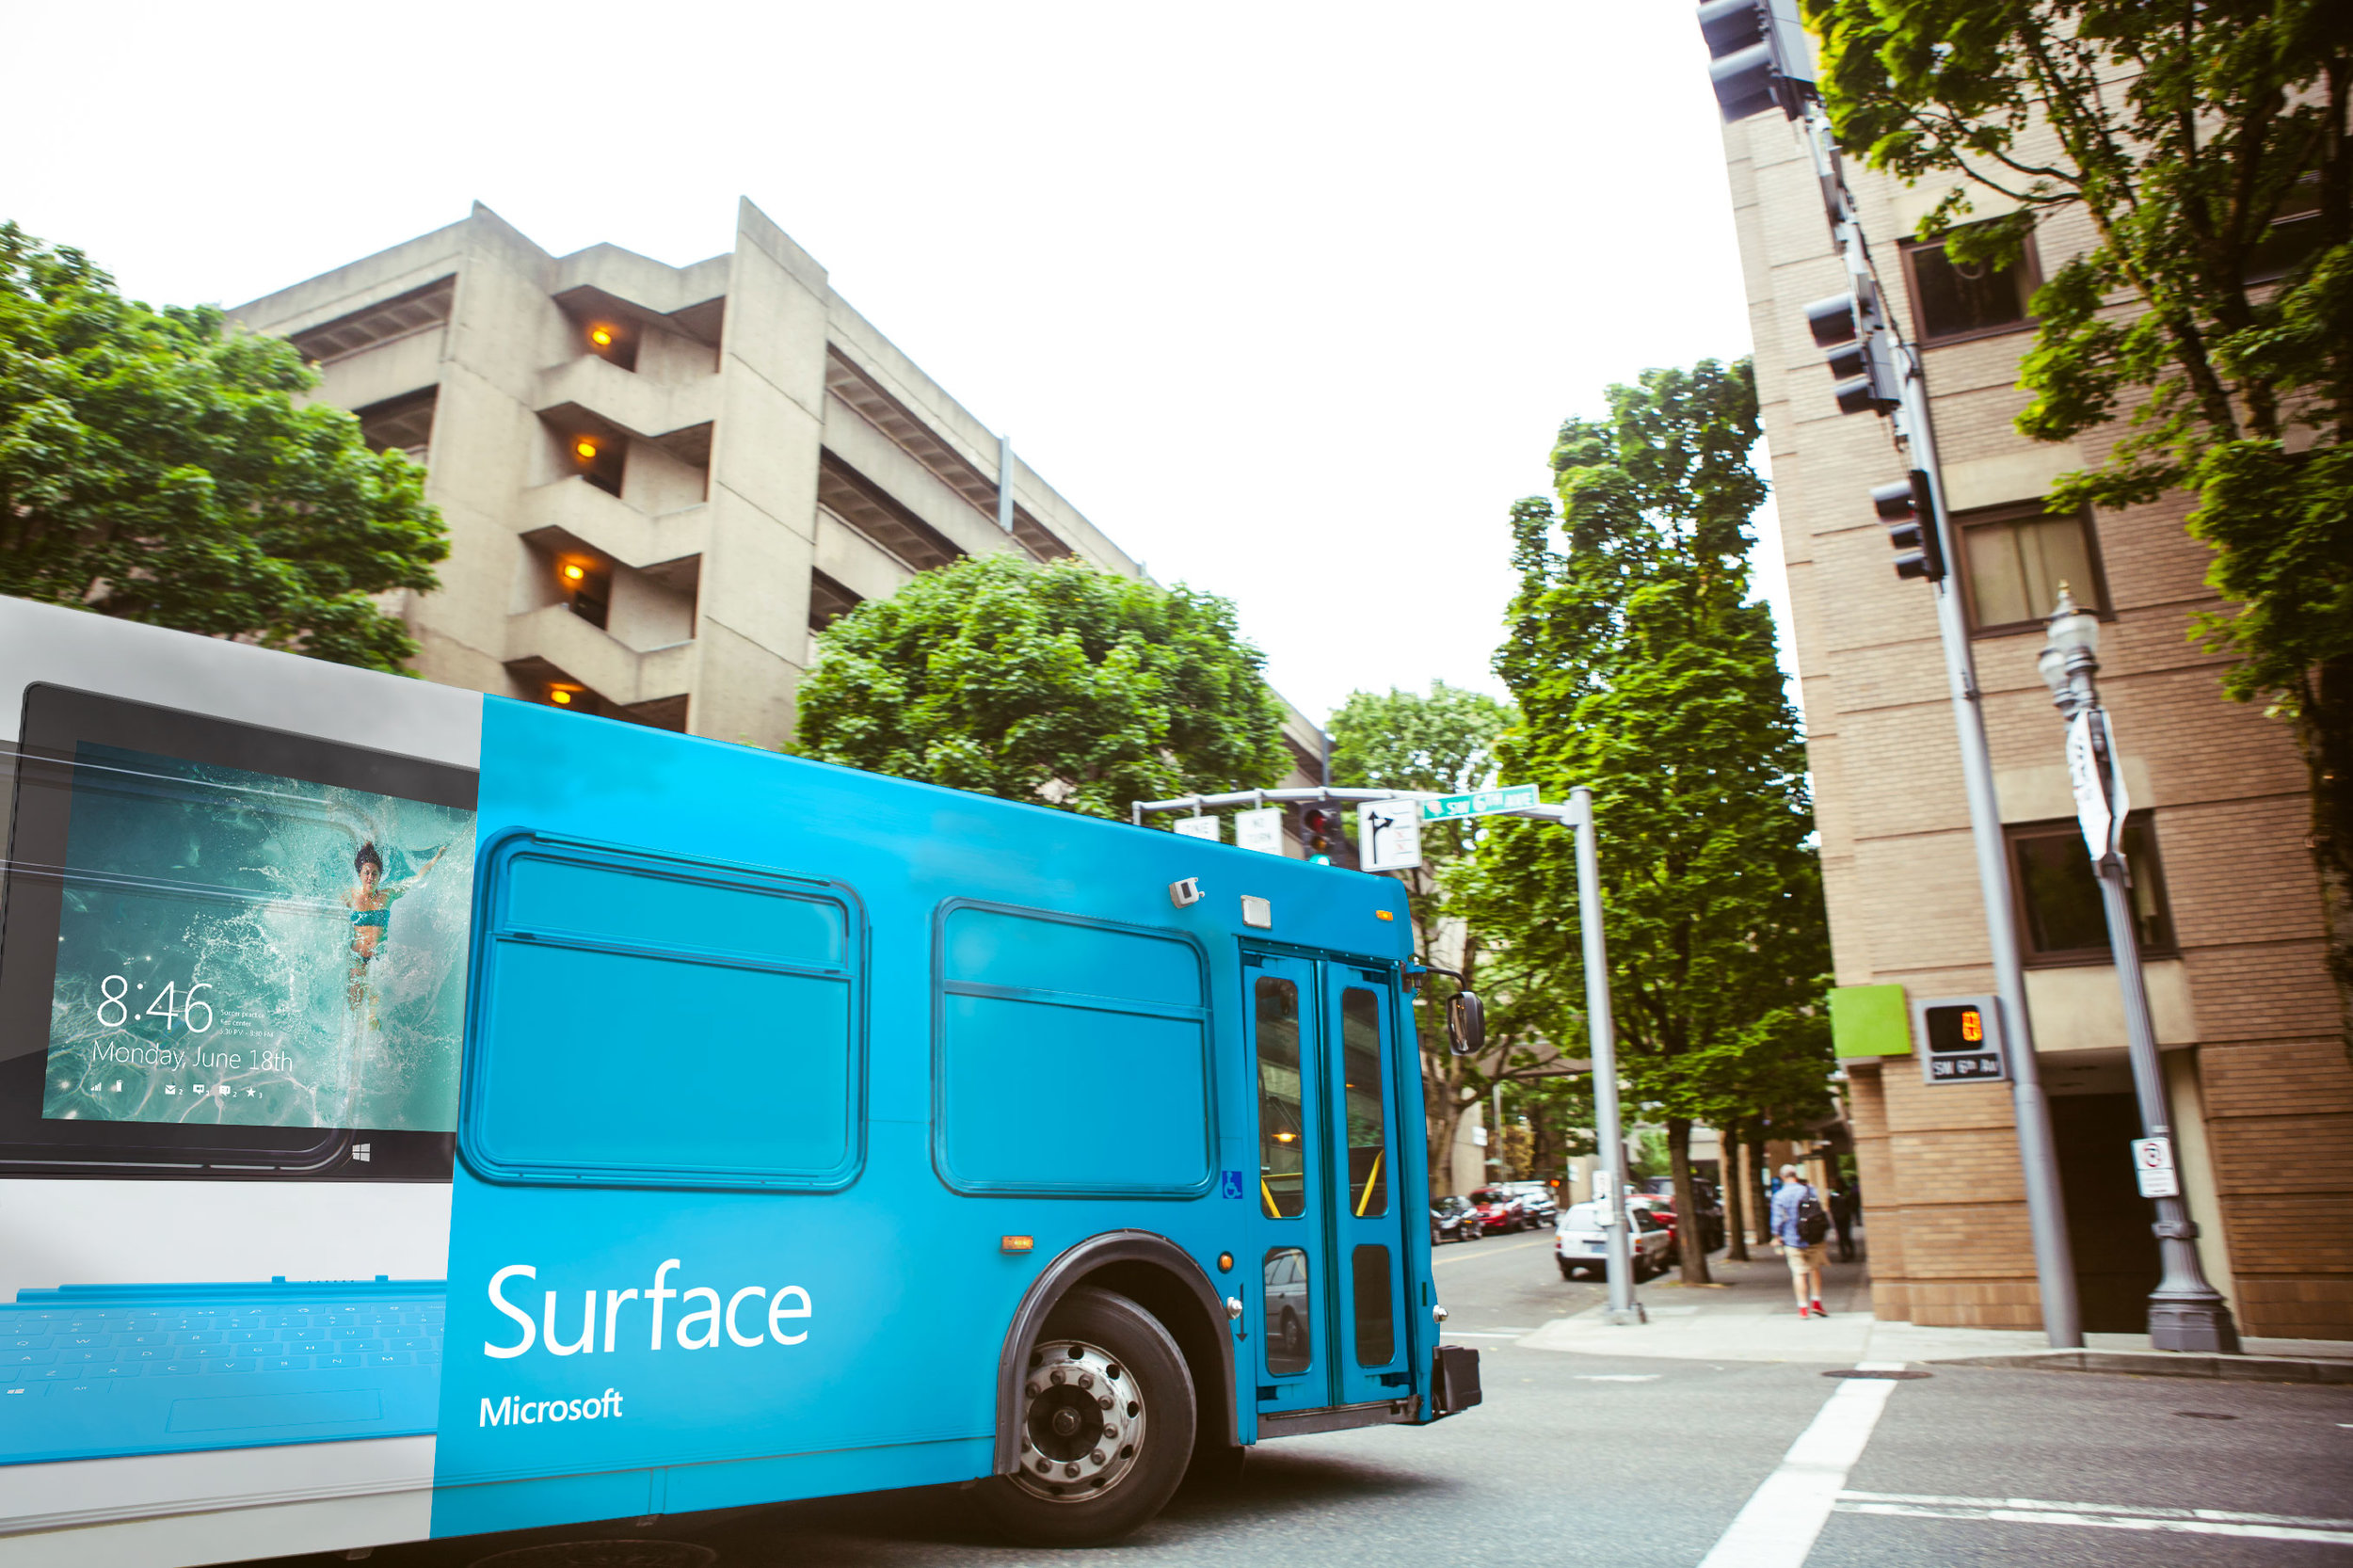 bus advertising for Microsoft Surface